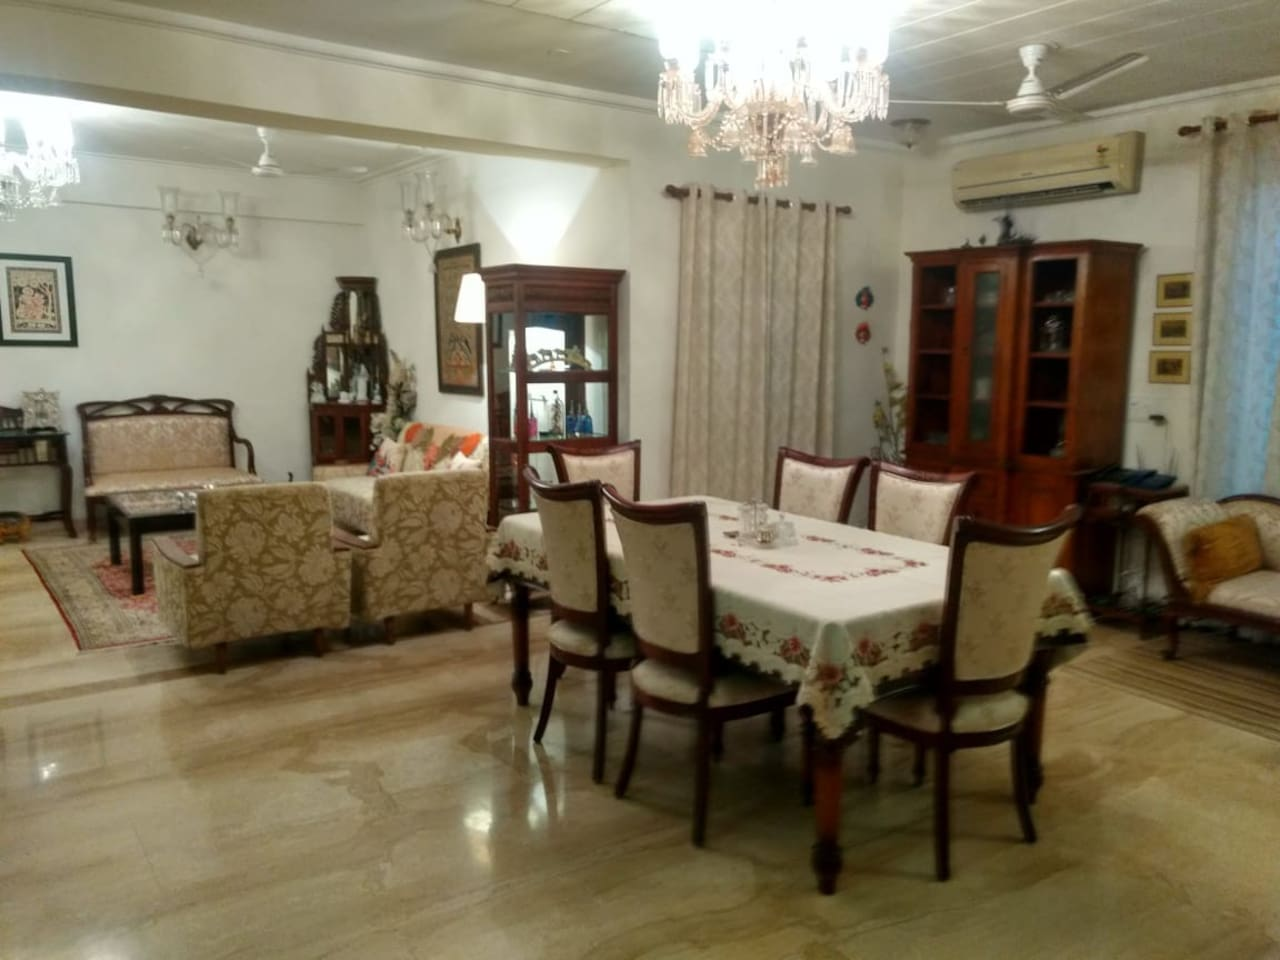 Dinning & Living Area adjoining the room